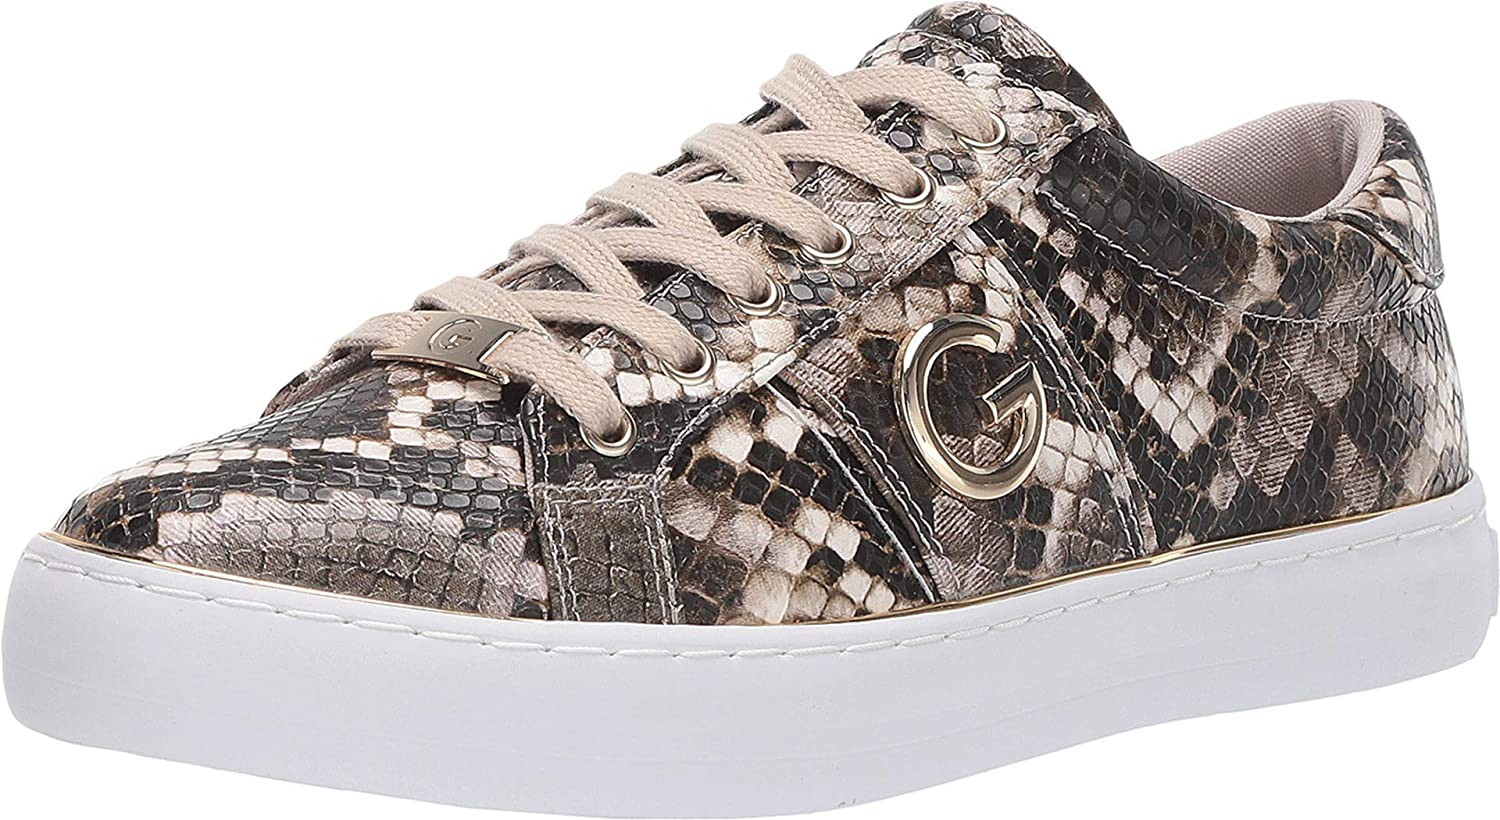 G by Guess Womens Grandyy2 Canvas Low